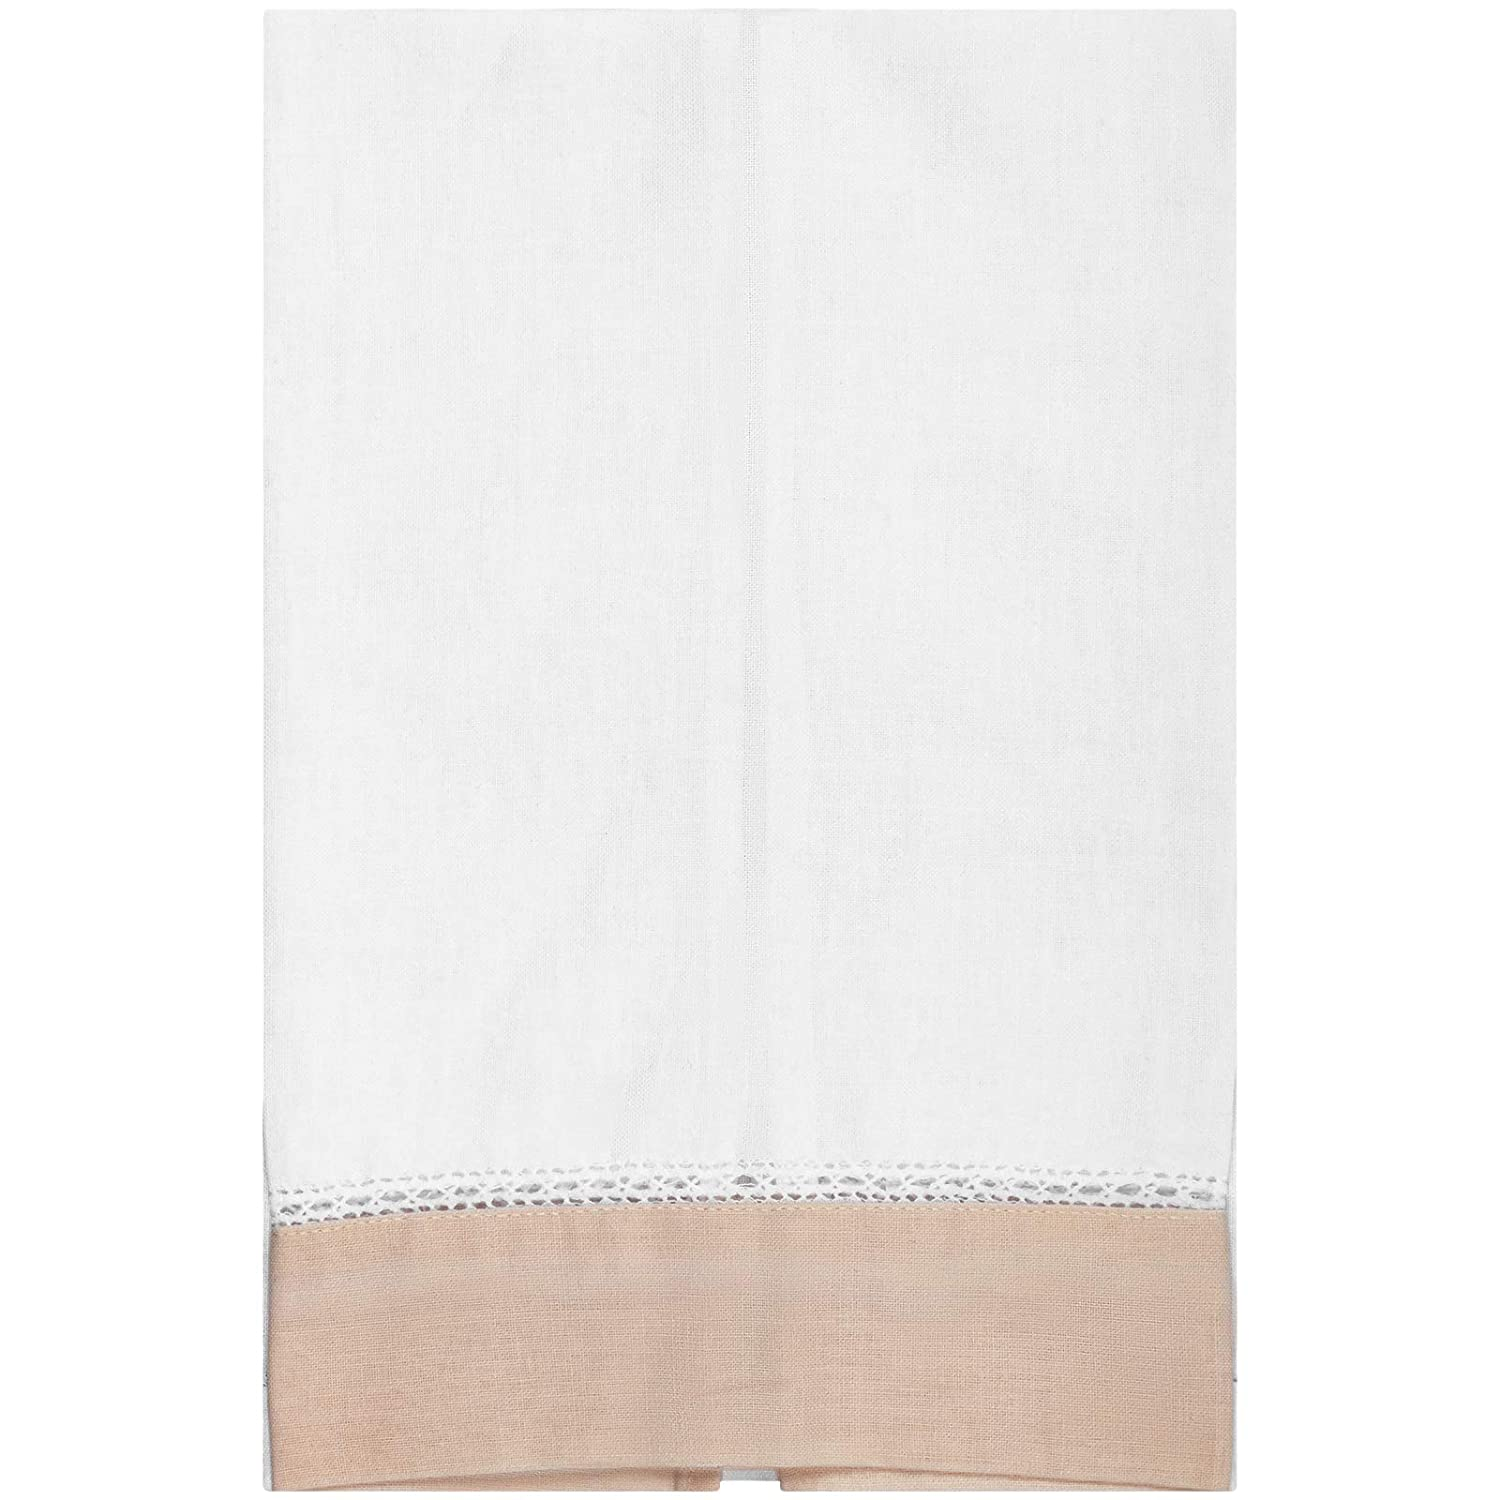 Linen Guest Bath Tea Hand Towel White with Ecru Colored Border 14 X 22 Inch